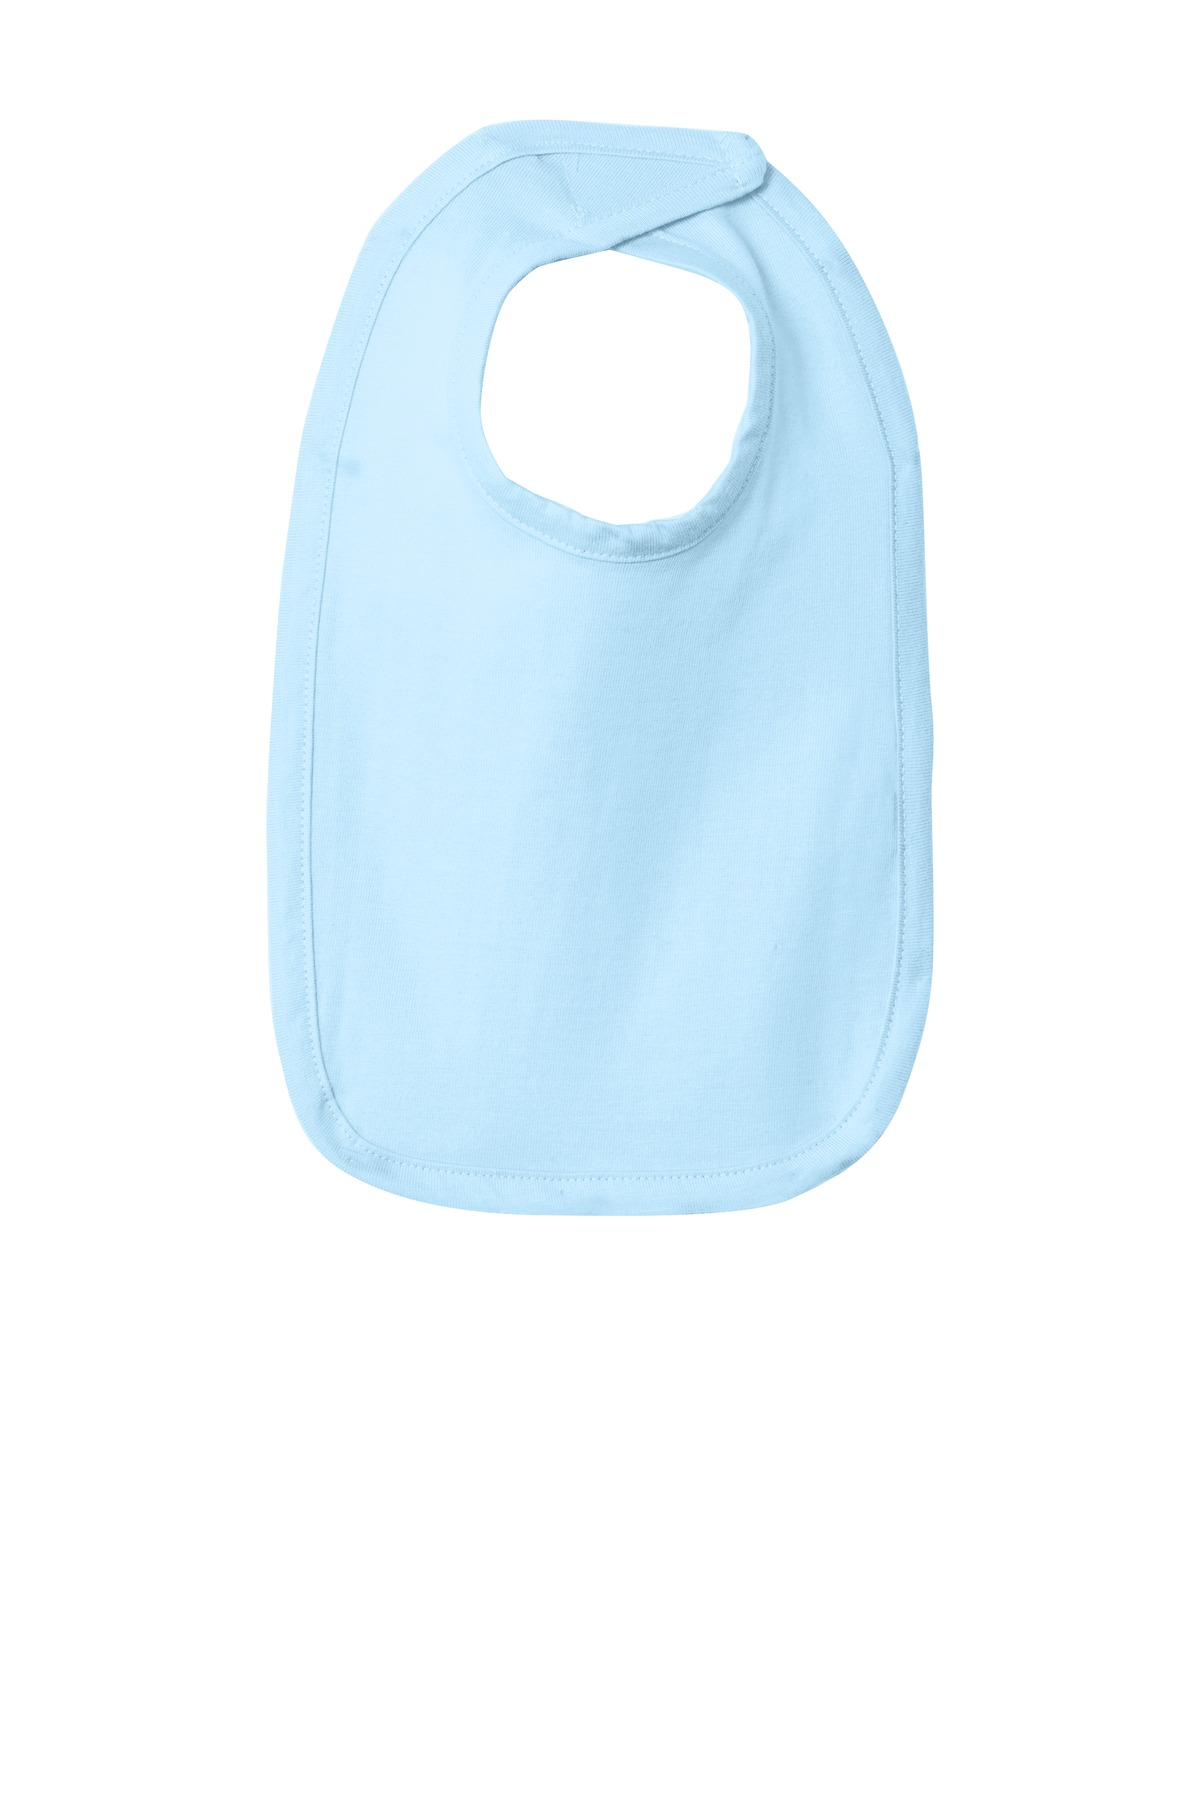 Rabbit Skins Infant Premium Jersey Bib. RS1005